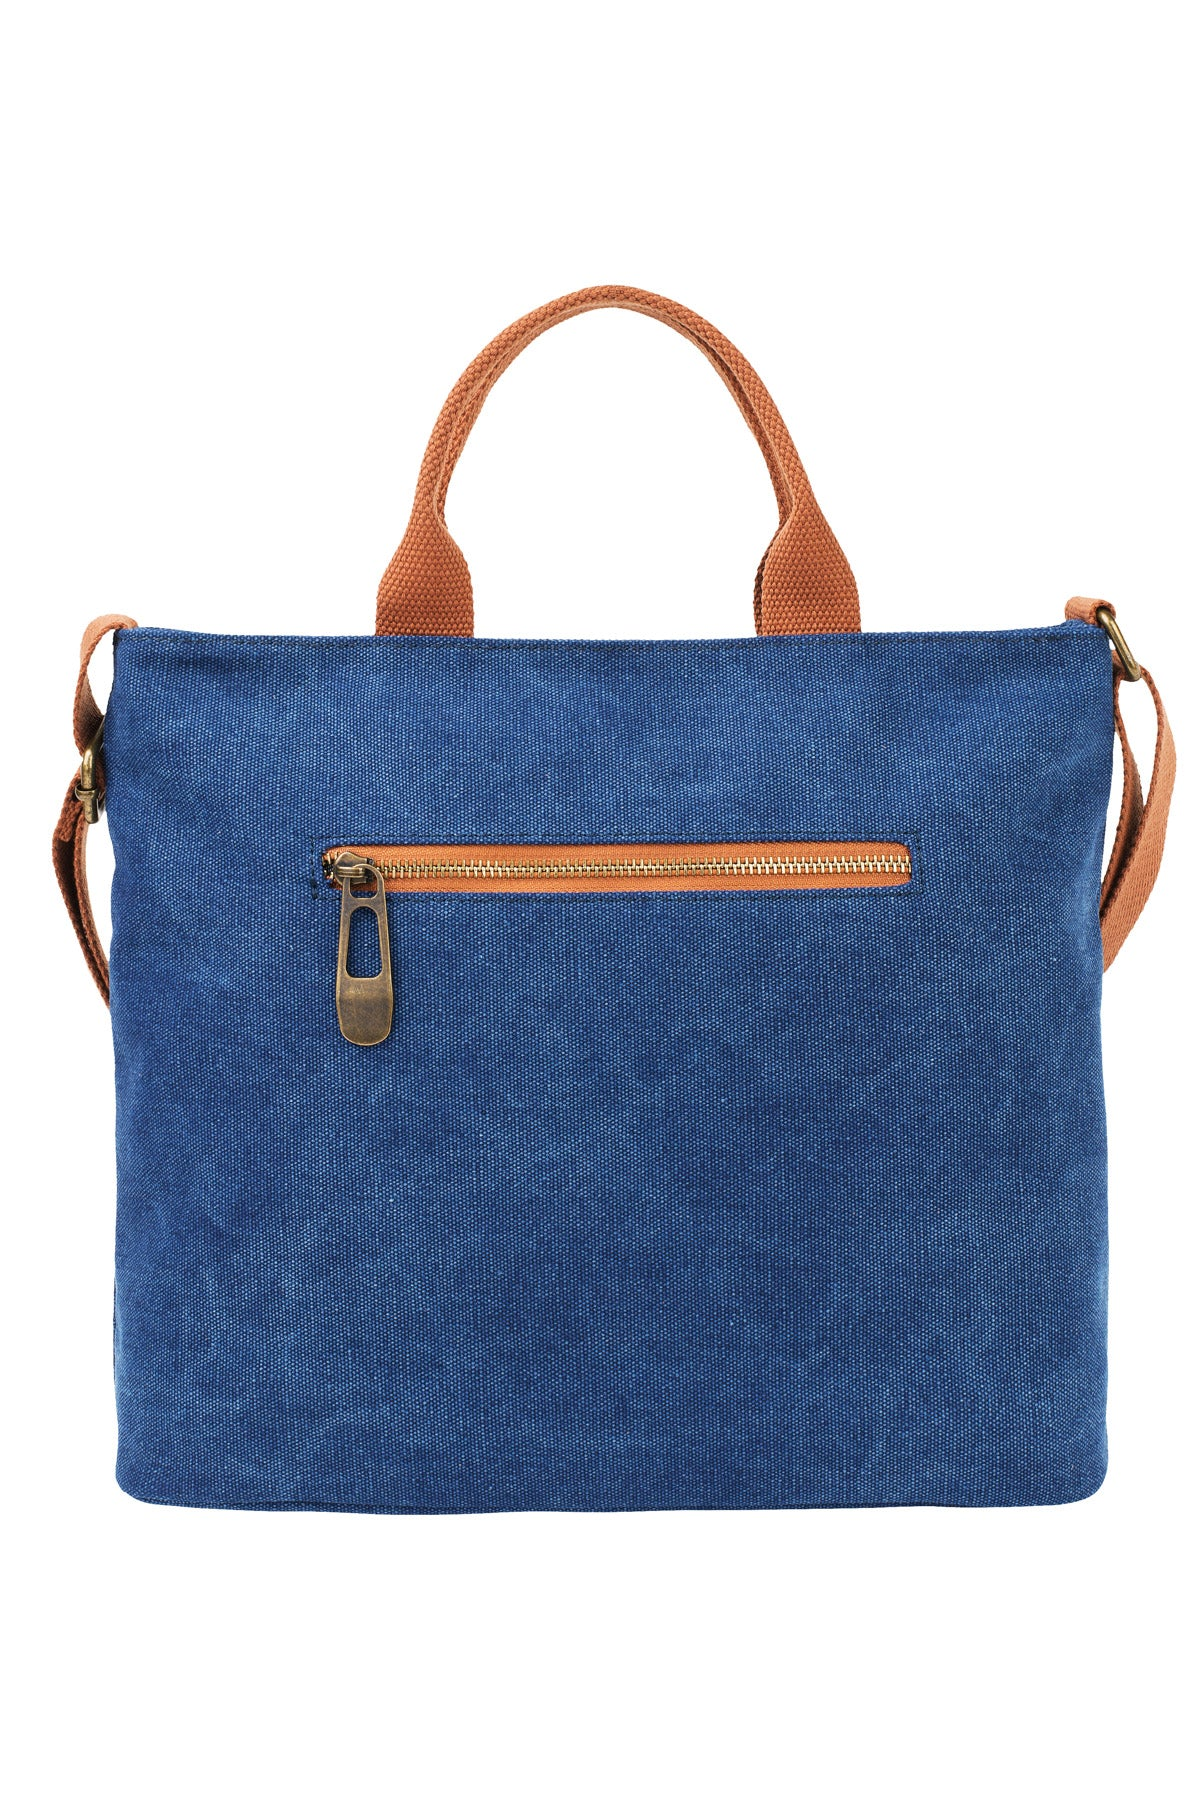 Handbag denim